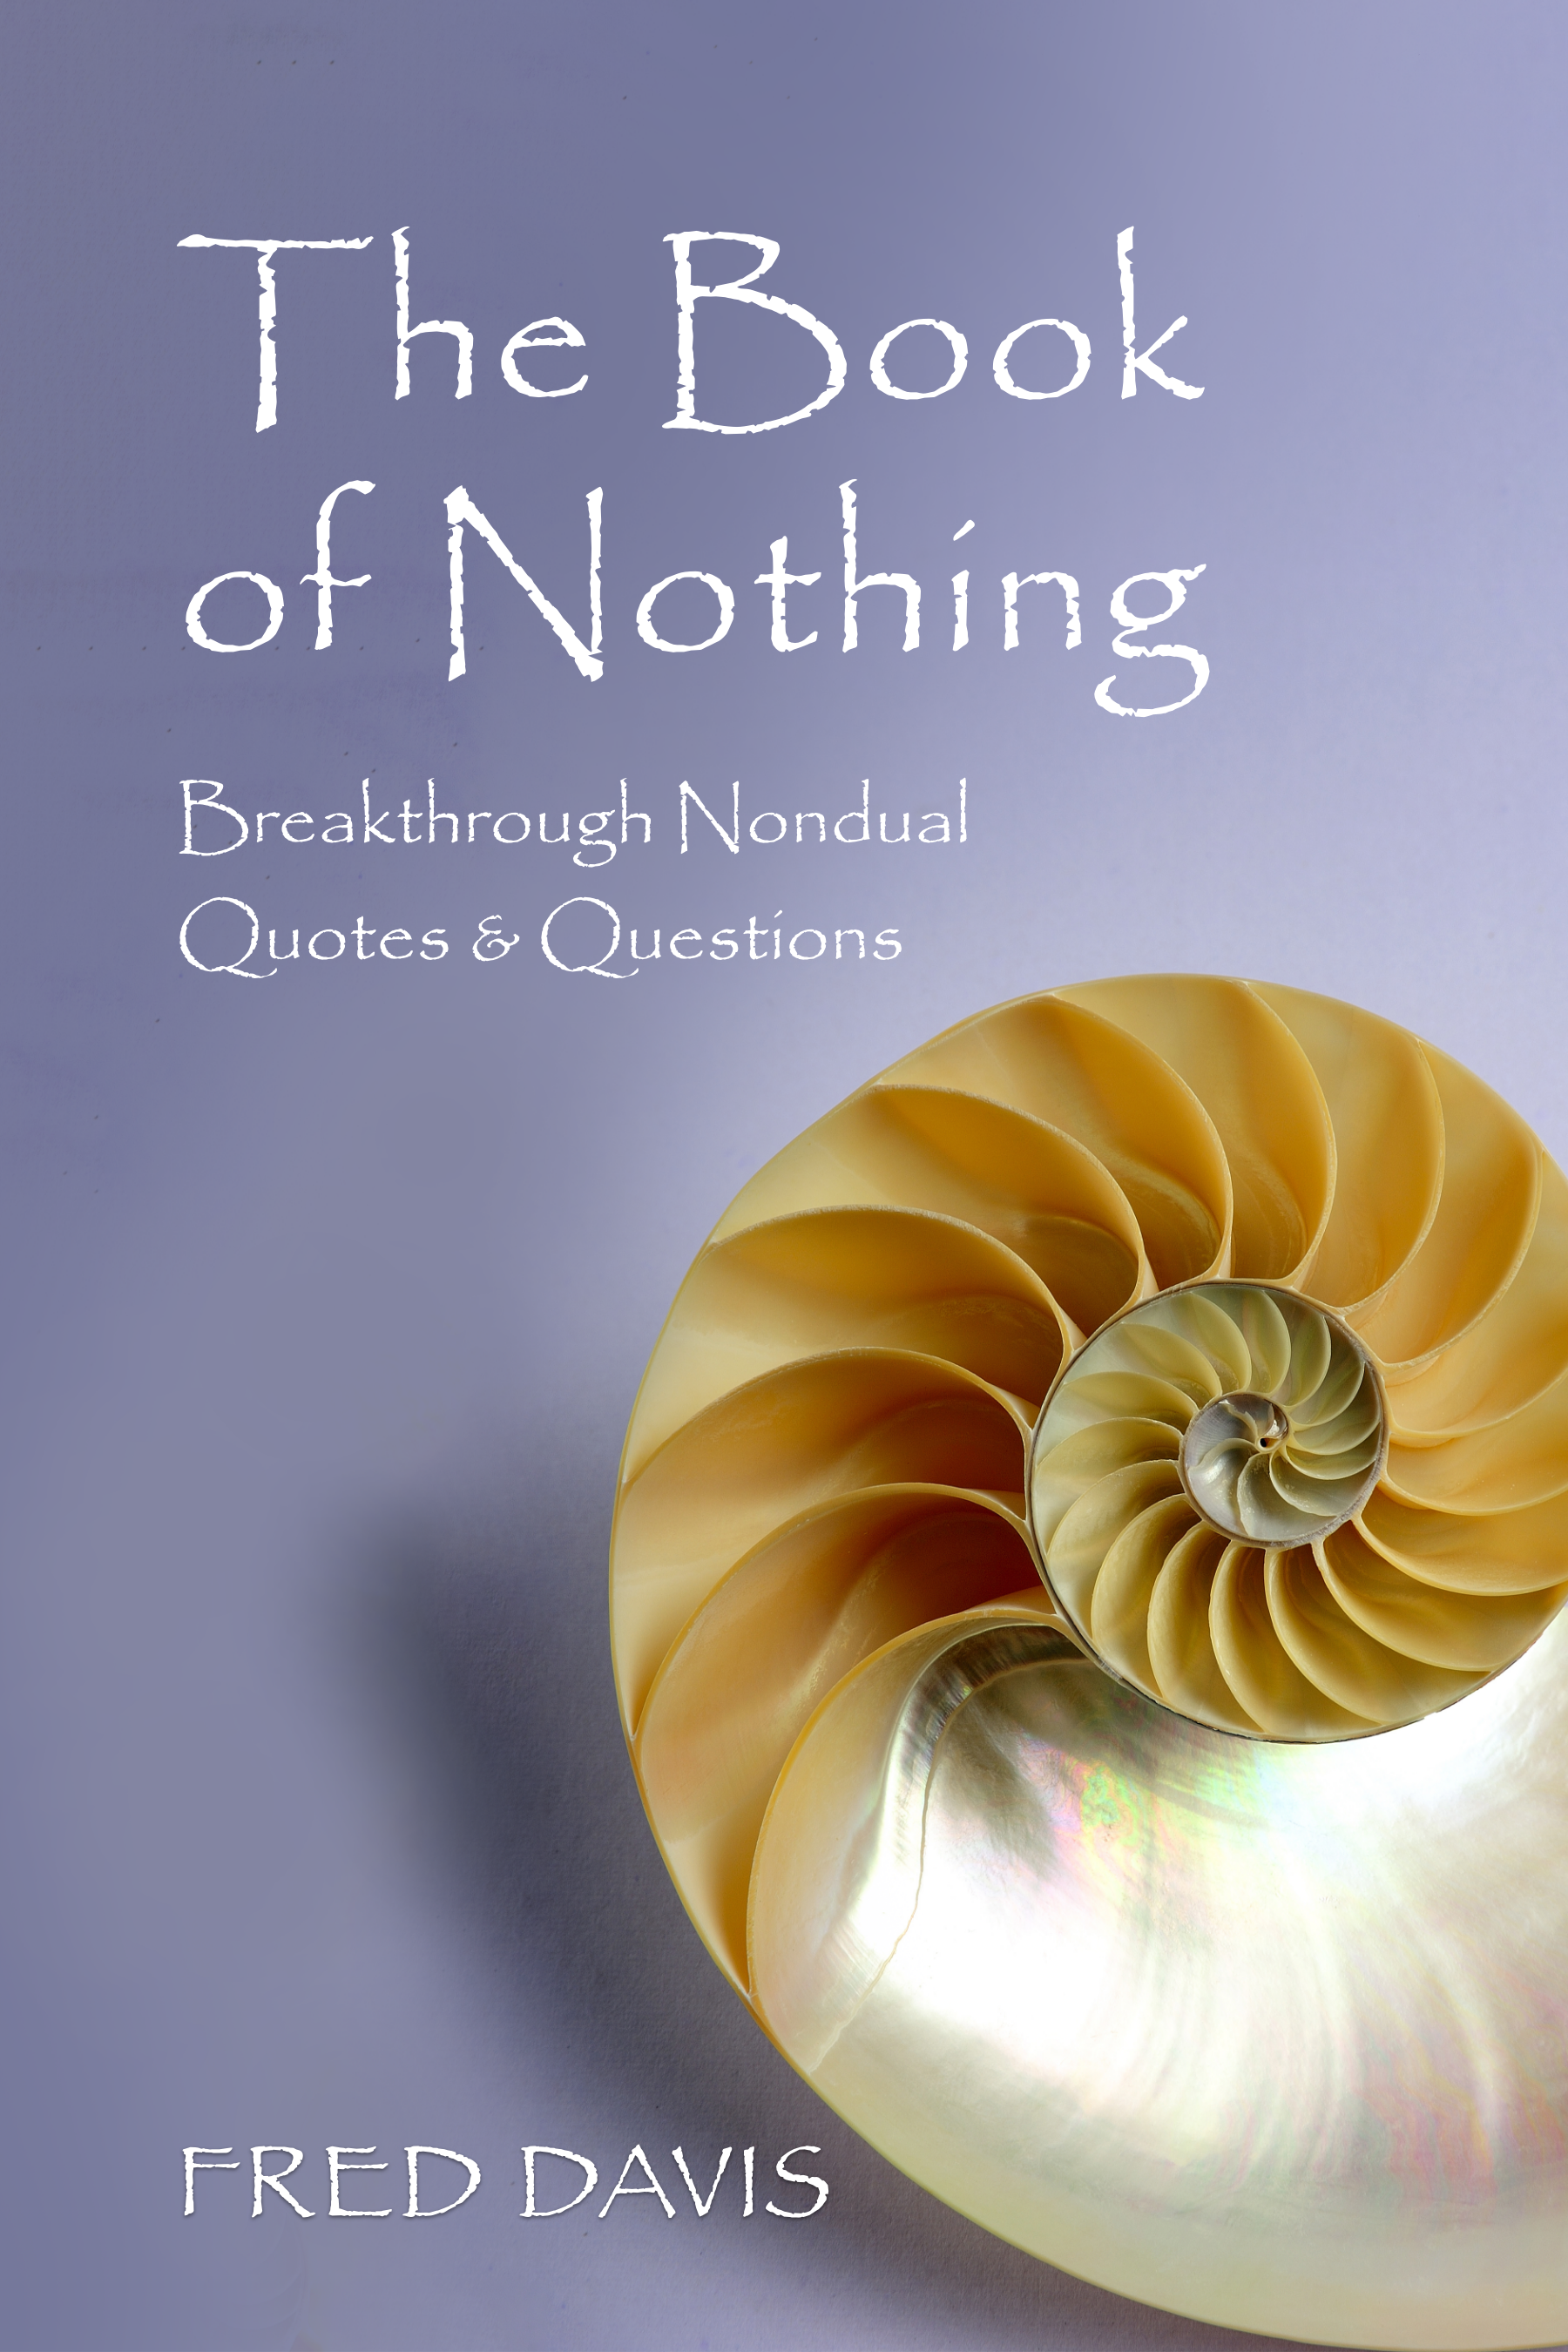 Book of Nothing final cover